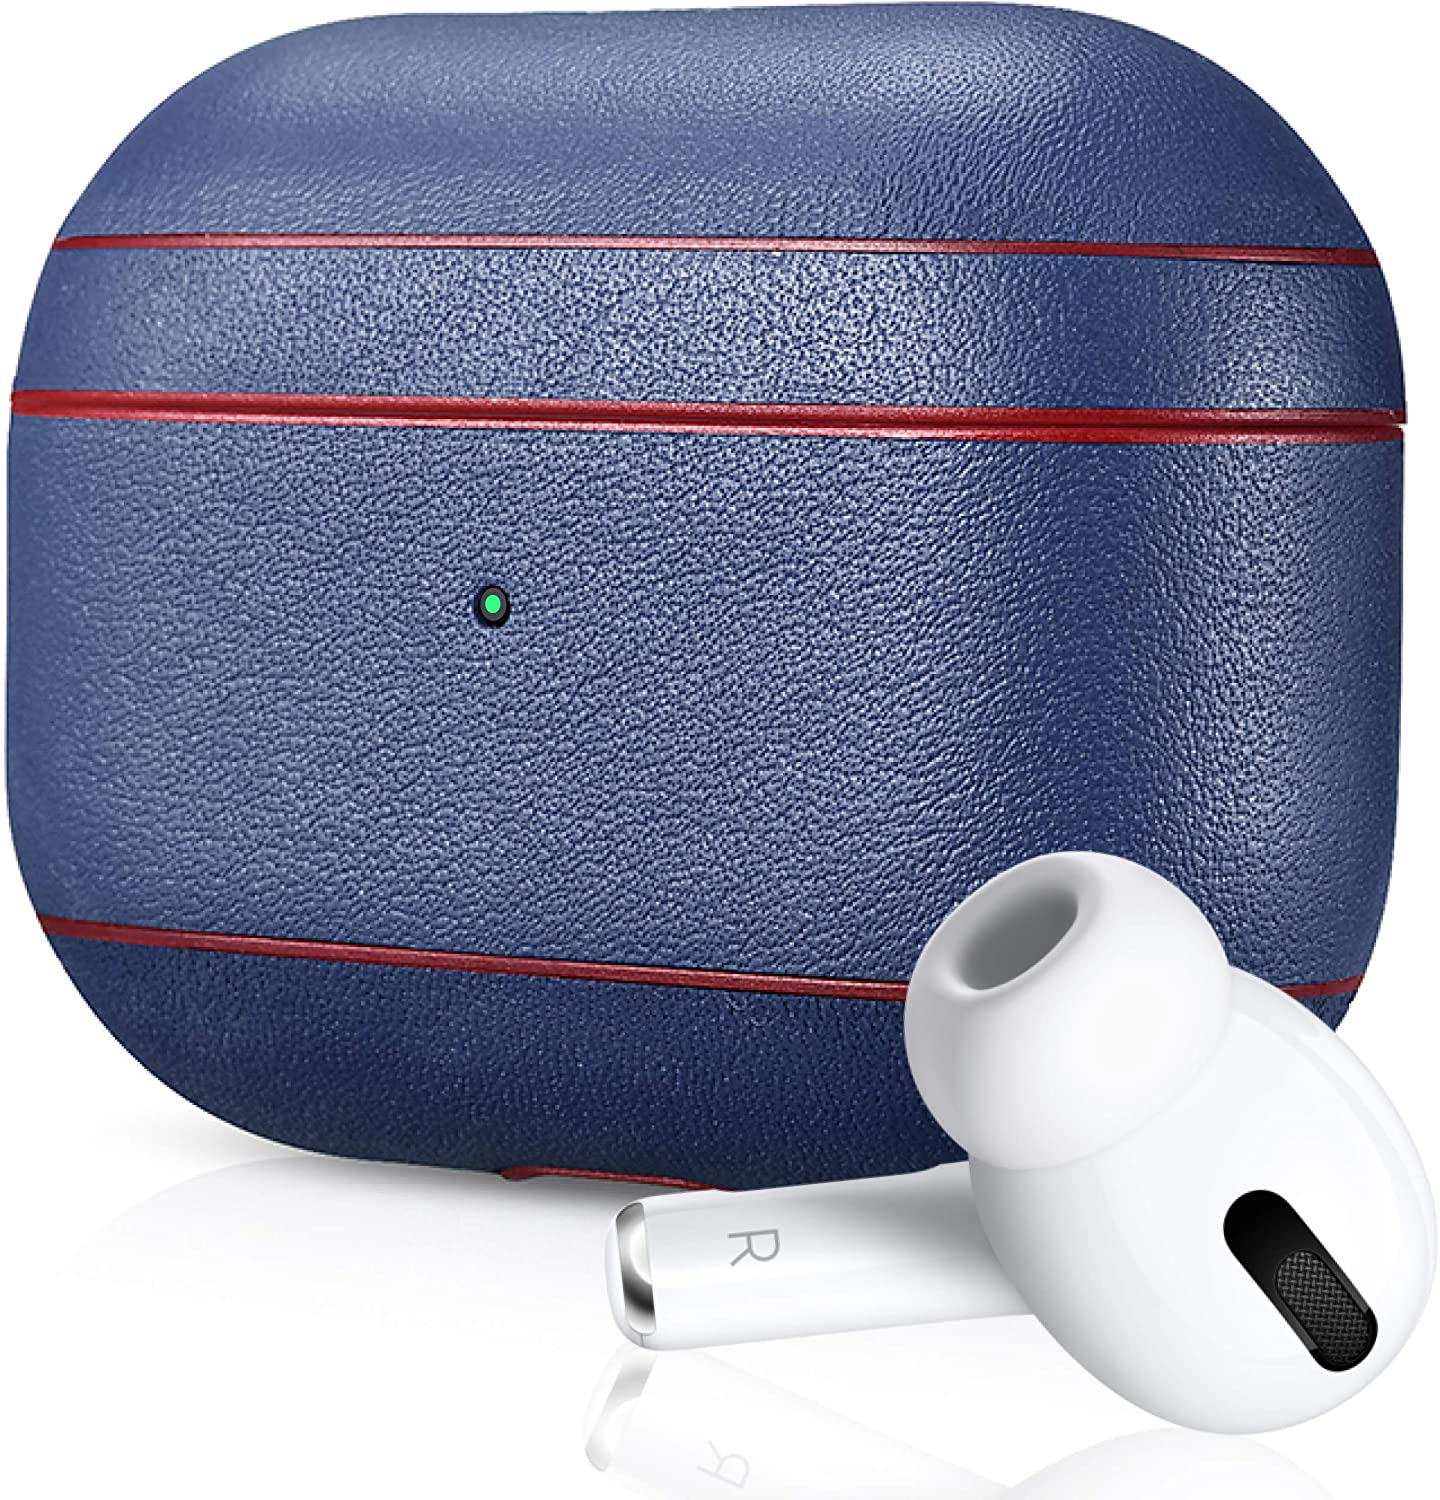 Air Vinyl Design, Leather Case for Apple AirPods Pro | Protective Case Cover | Wireless Charging Capability | Shockproof and Scratchproof Design (Navy | Red Trim)